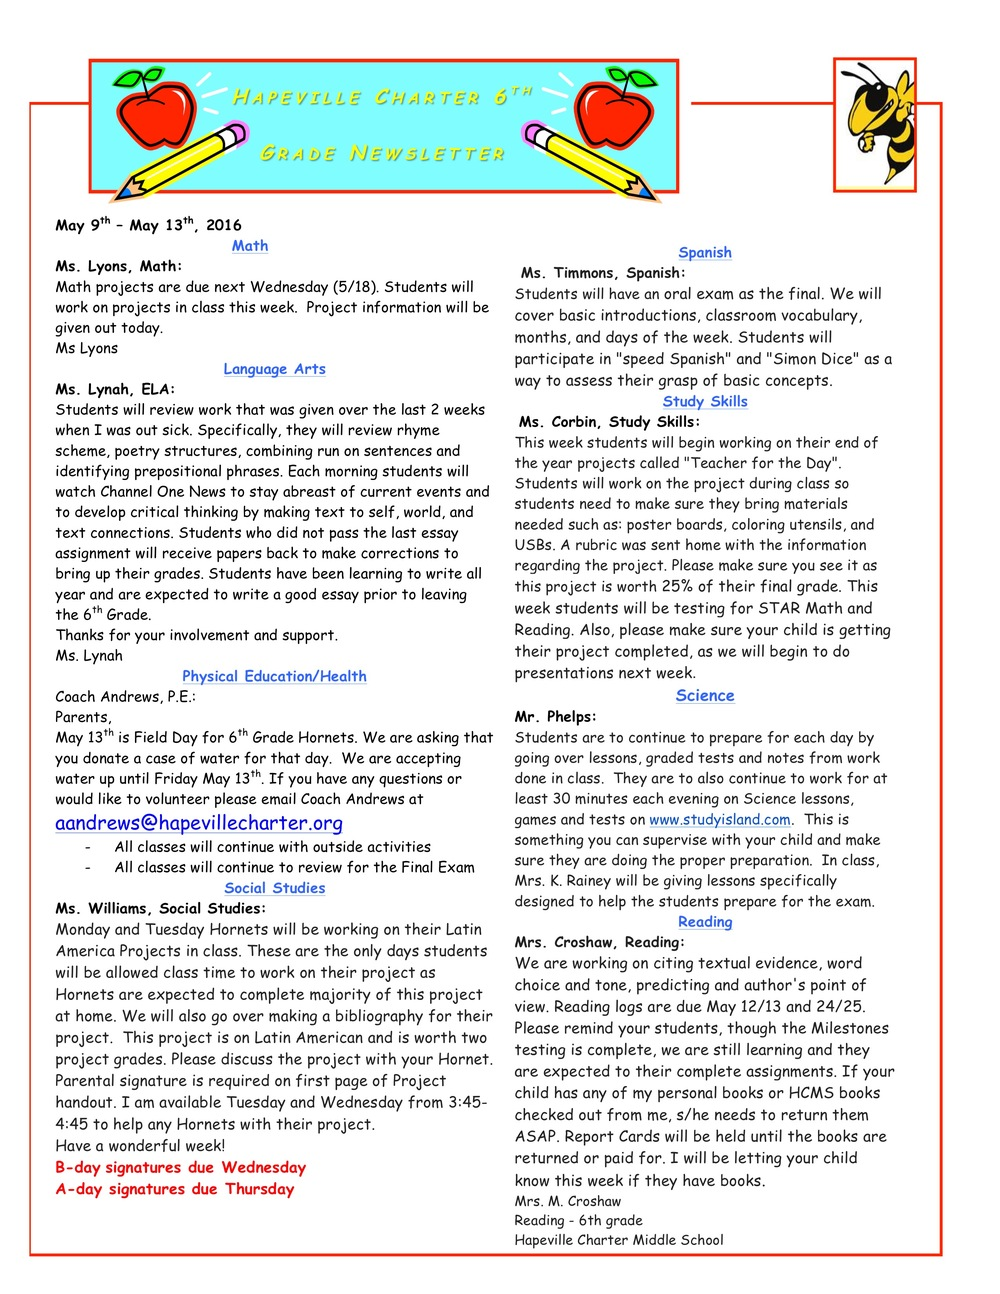 Newsletter Image6th Grade Newsletter 5.9.2016.jpeg